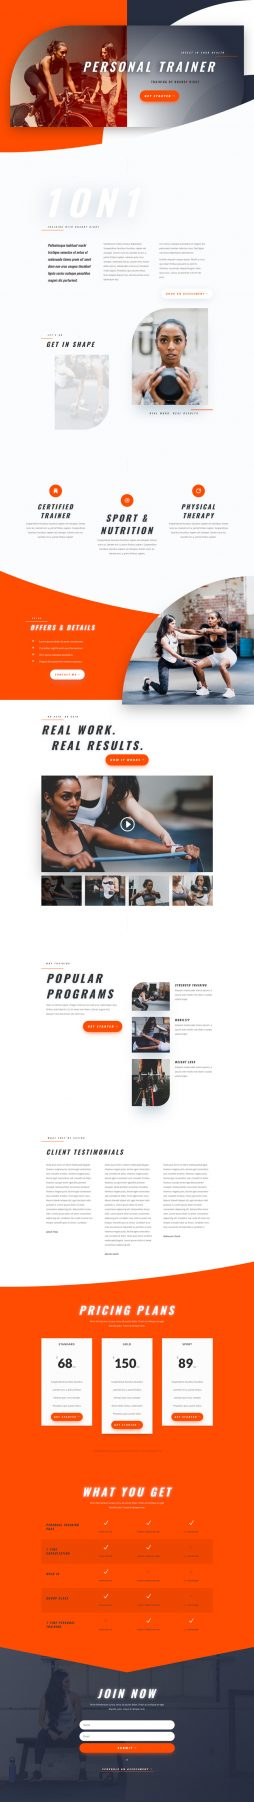 personal-trainer-landing-page-254x1802